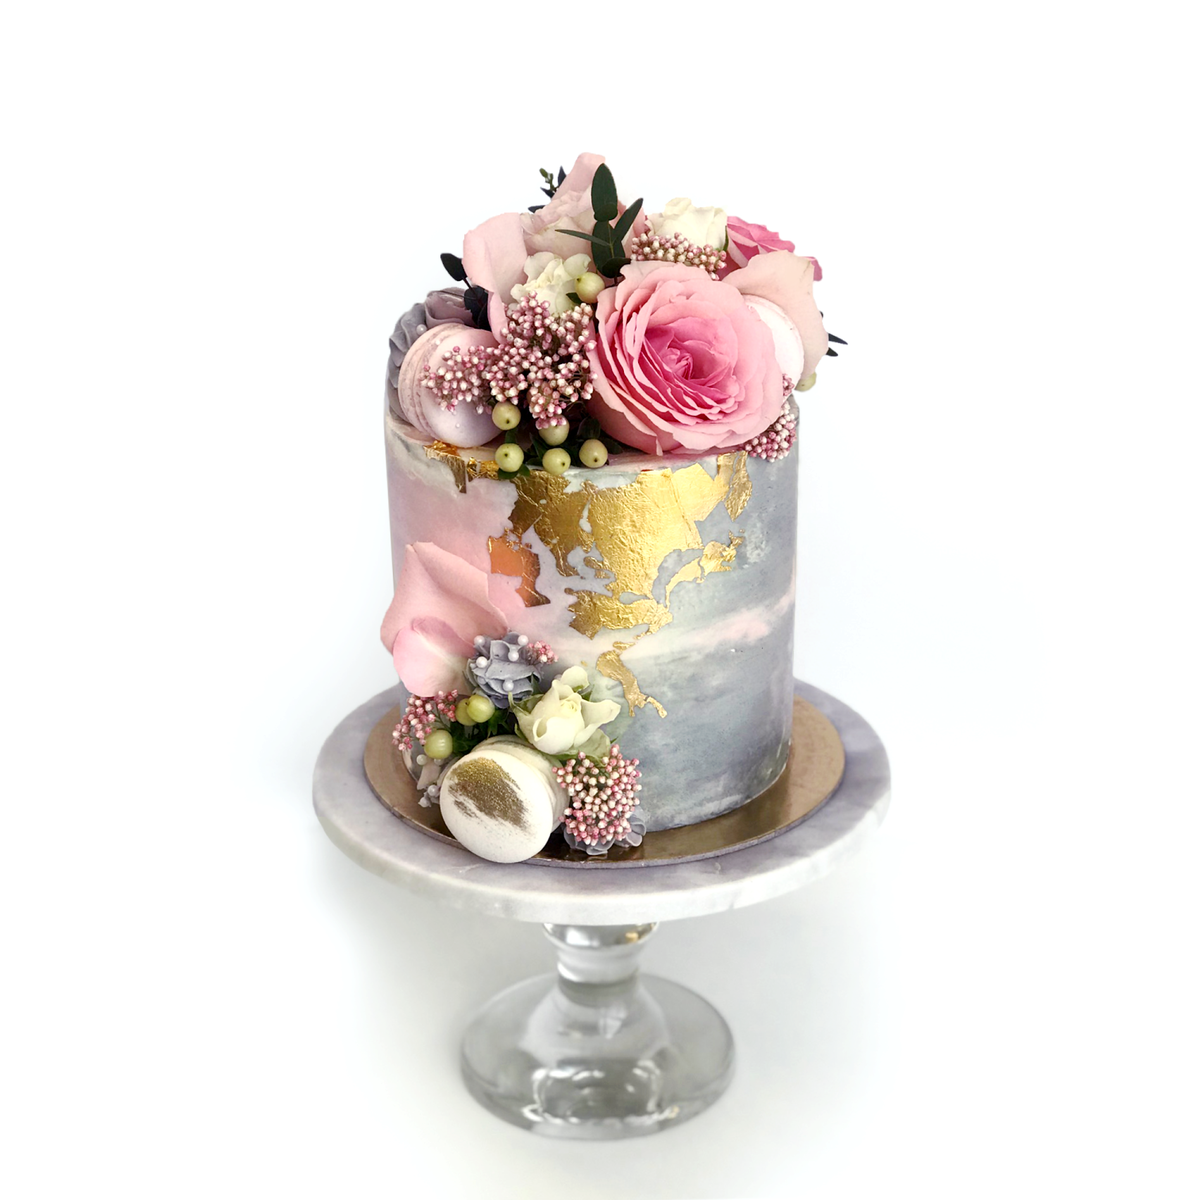 Whippt Desserts - Auction Cake May 9 Mothers Day 2